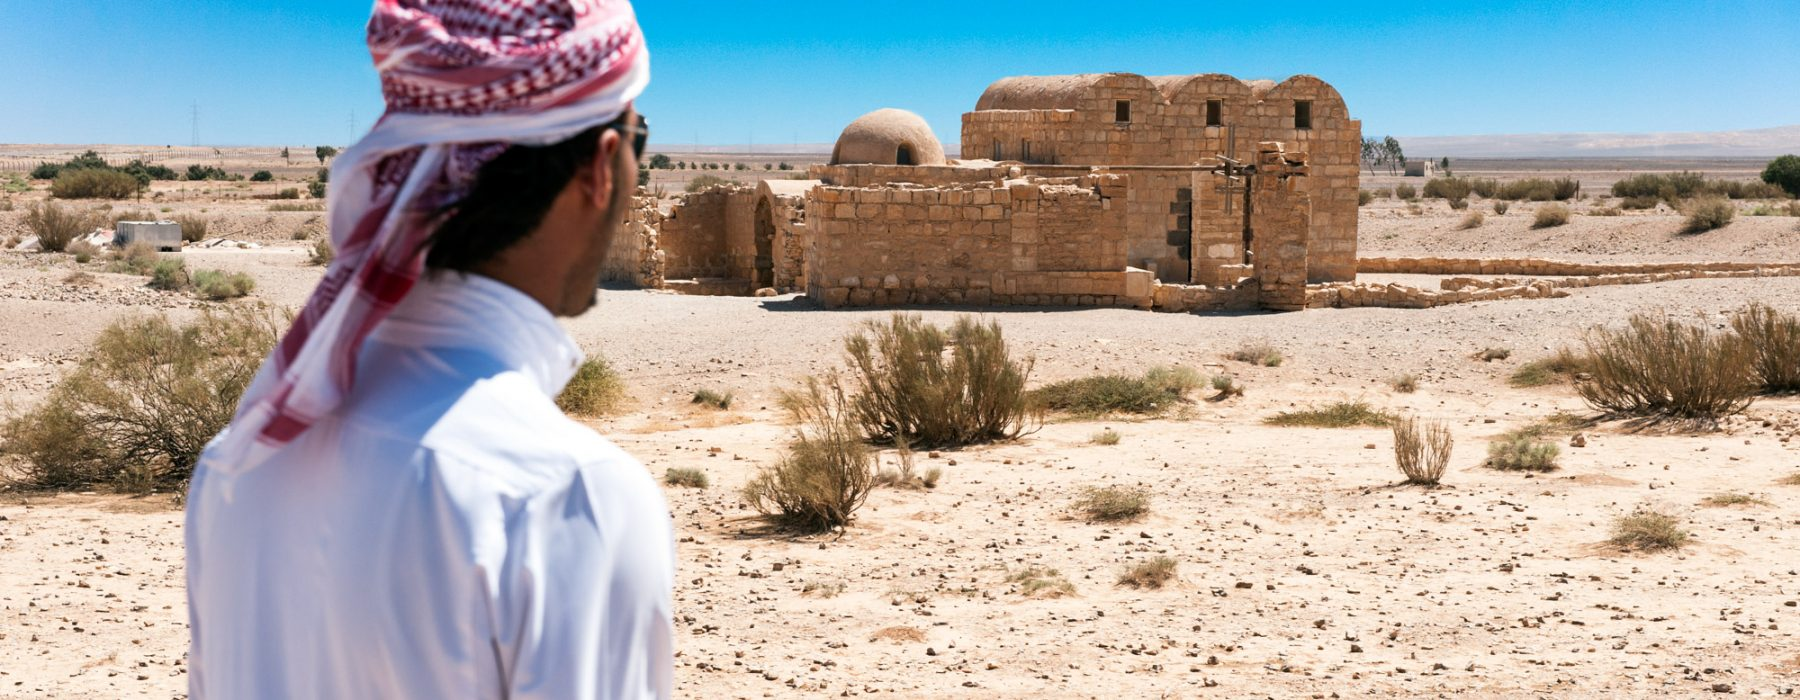 Qusayr Amra: the little castle in the desert, testimony to the Umayyad Caliphate